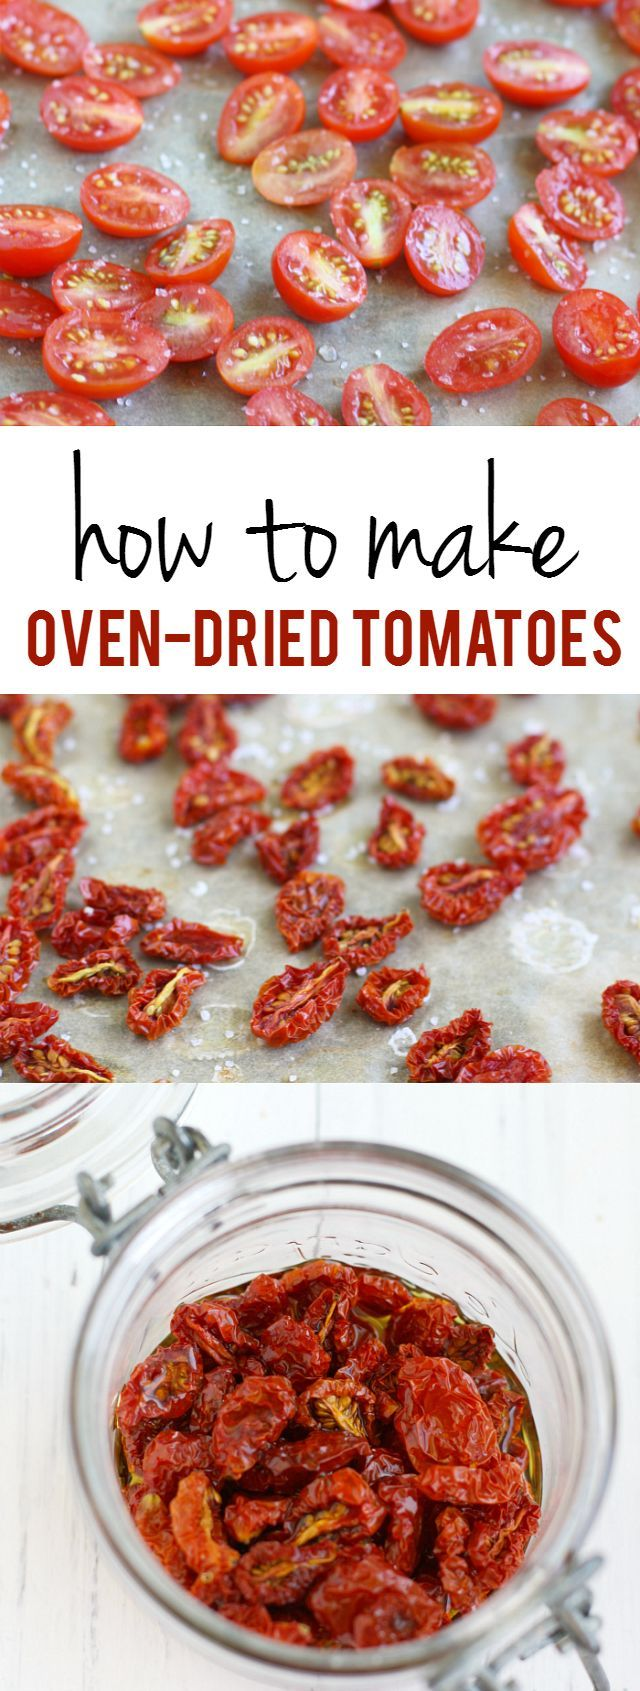 How to make oven-dried tomatoes. These are so easy to make and really add a lot of flavor to your recipes! A perfect way to use all your extra garden tomatoes! #tomatoes #vegetables